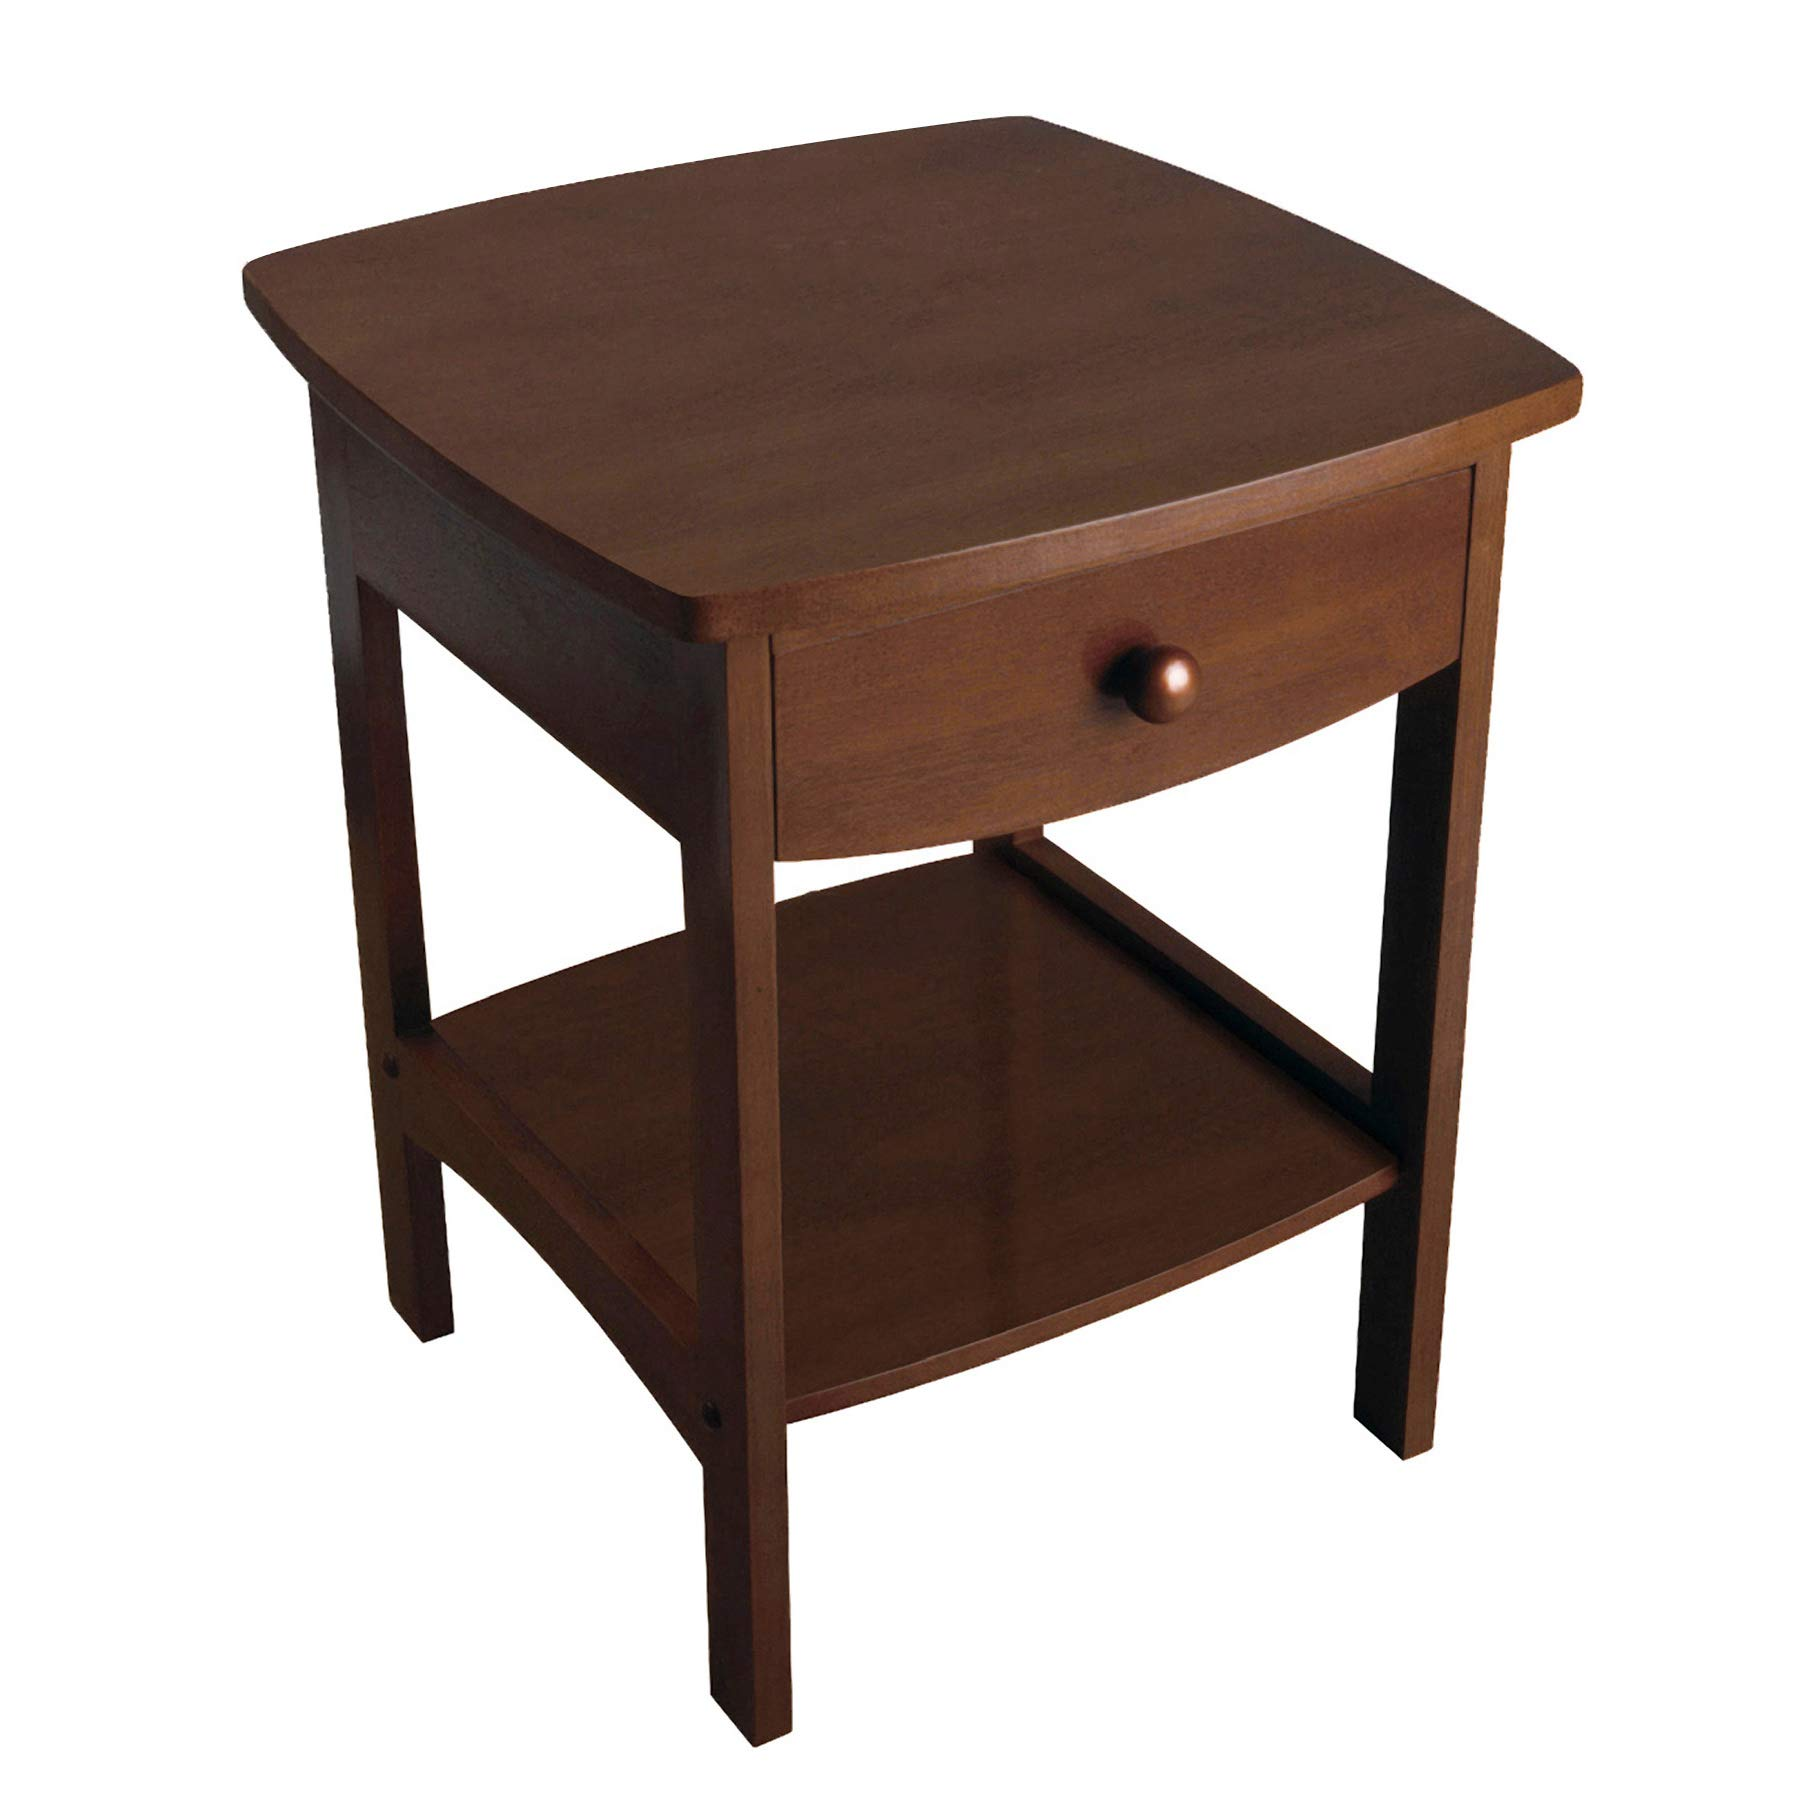 Winsome Wood 94918 Claire Accent Table, Walnut by Winsome Wood